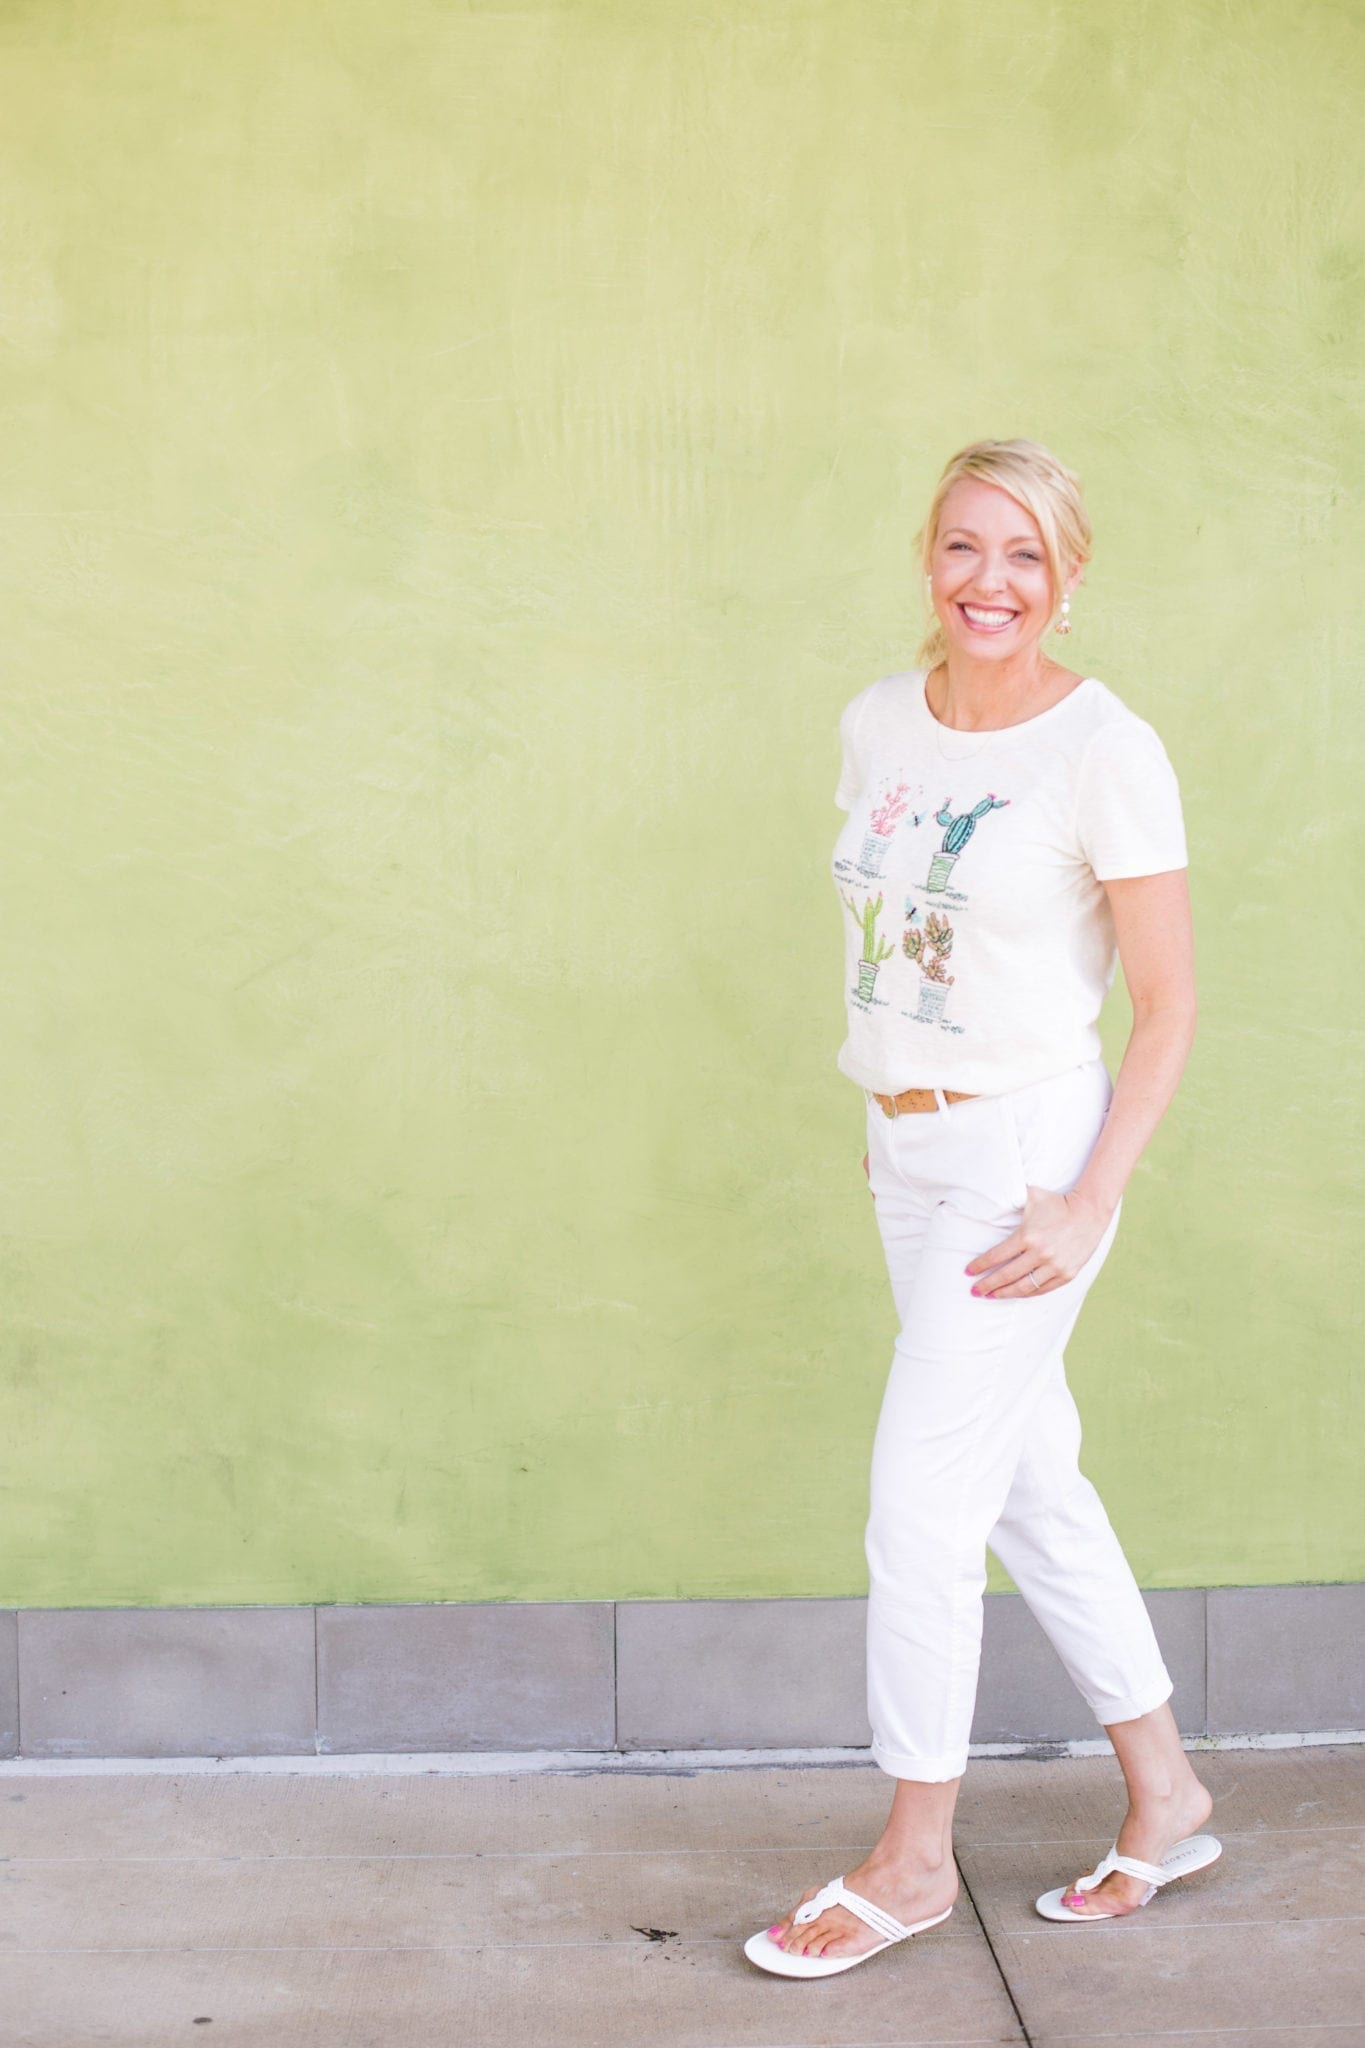 Embroidered t shirt with cactus print and summer white pants outfit.